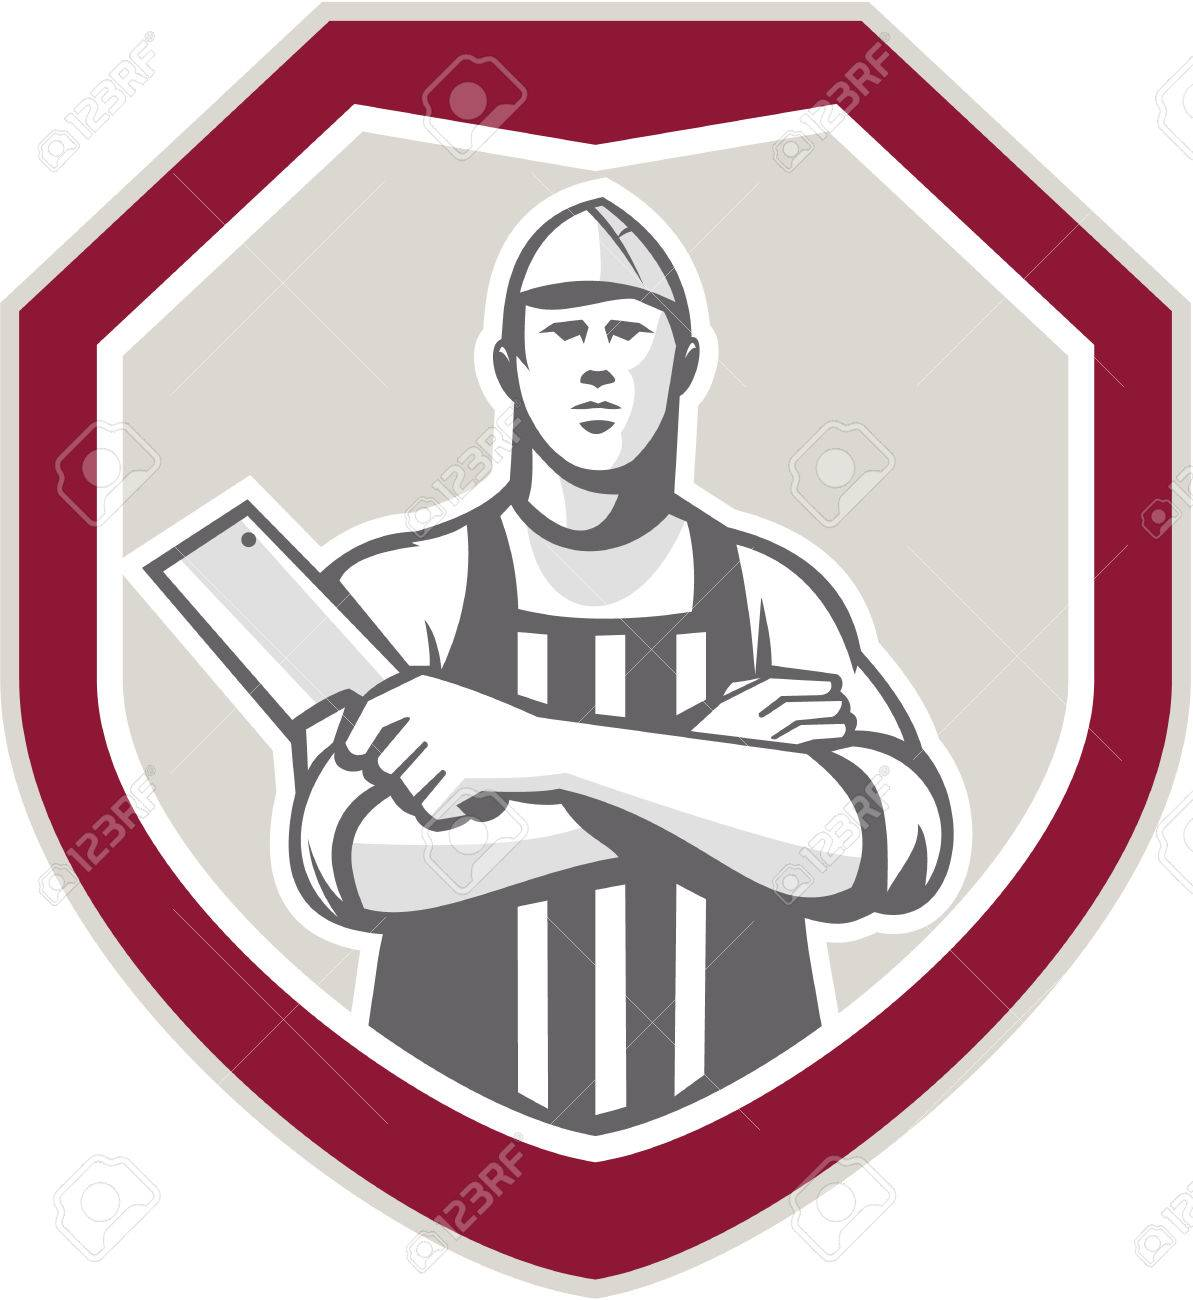 Illustration of a butcher cutter worker with meat cleaver knife facing front set inside shield crest on isolated background. - 27235921